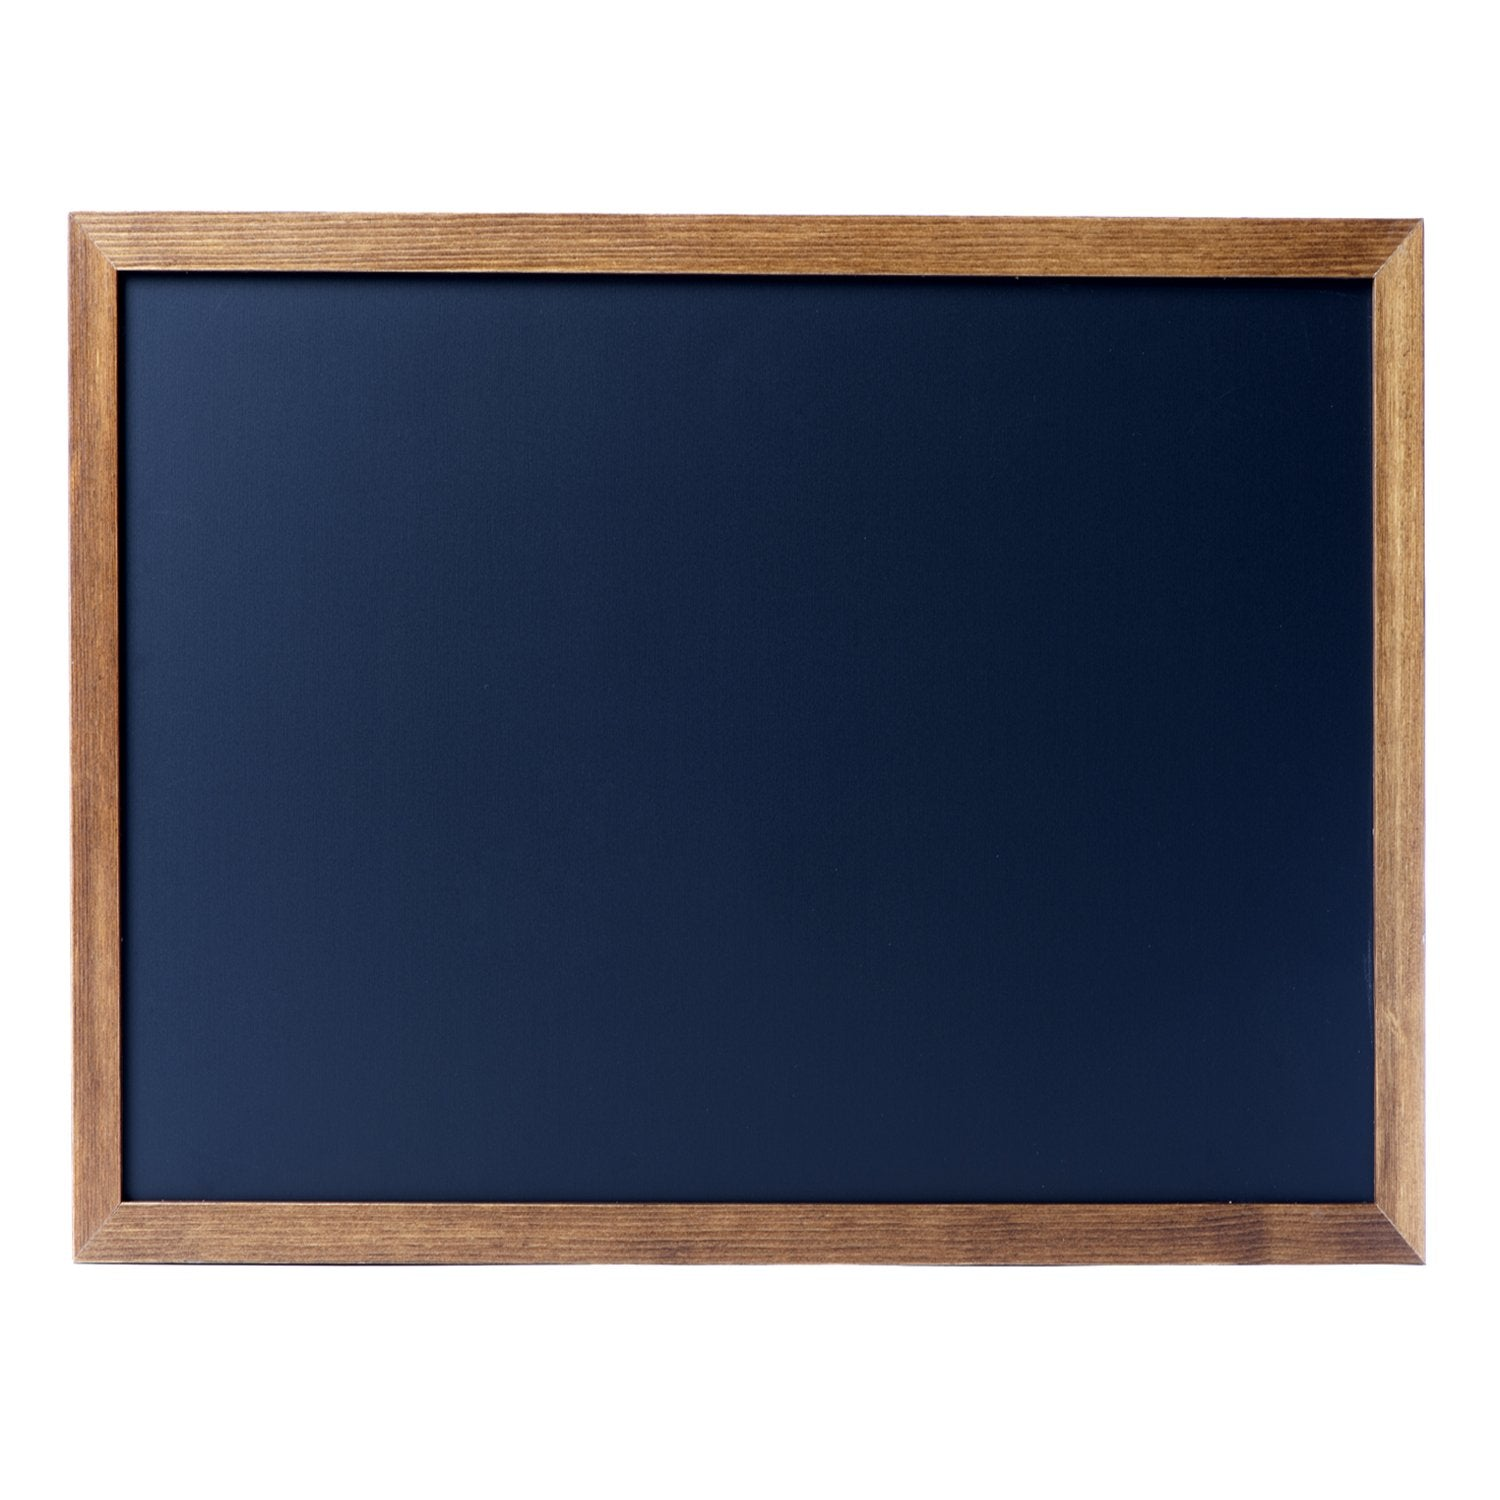 24x18 chalkboard with wooden frame - Wooden Frame